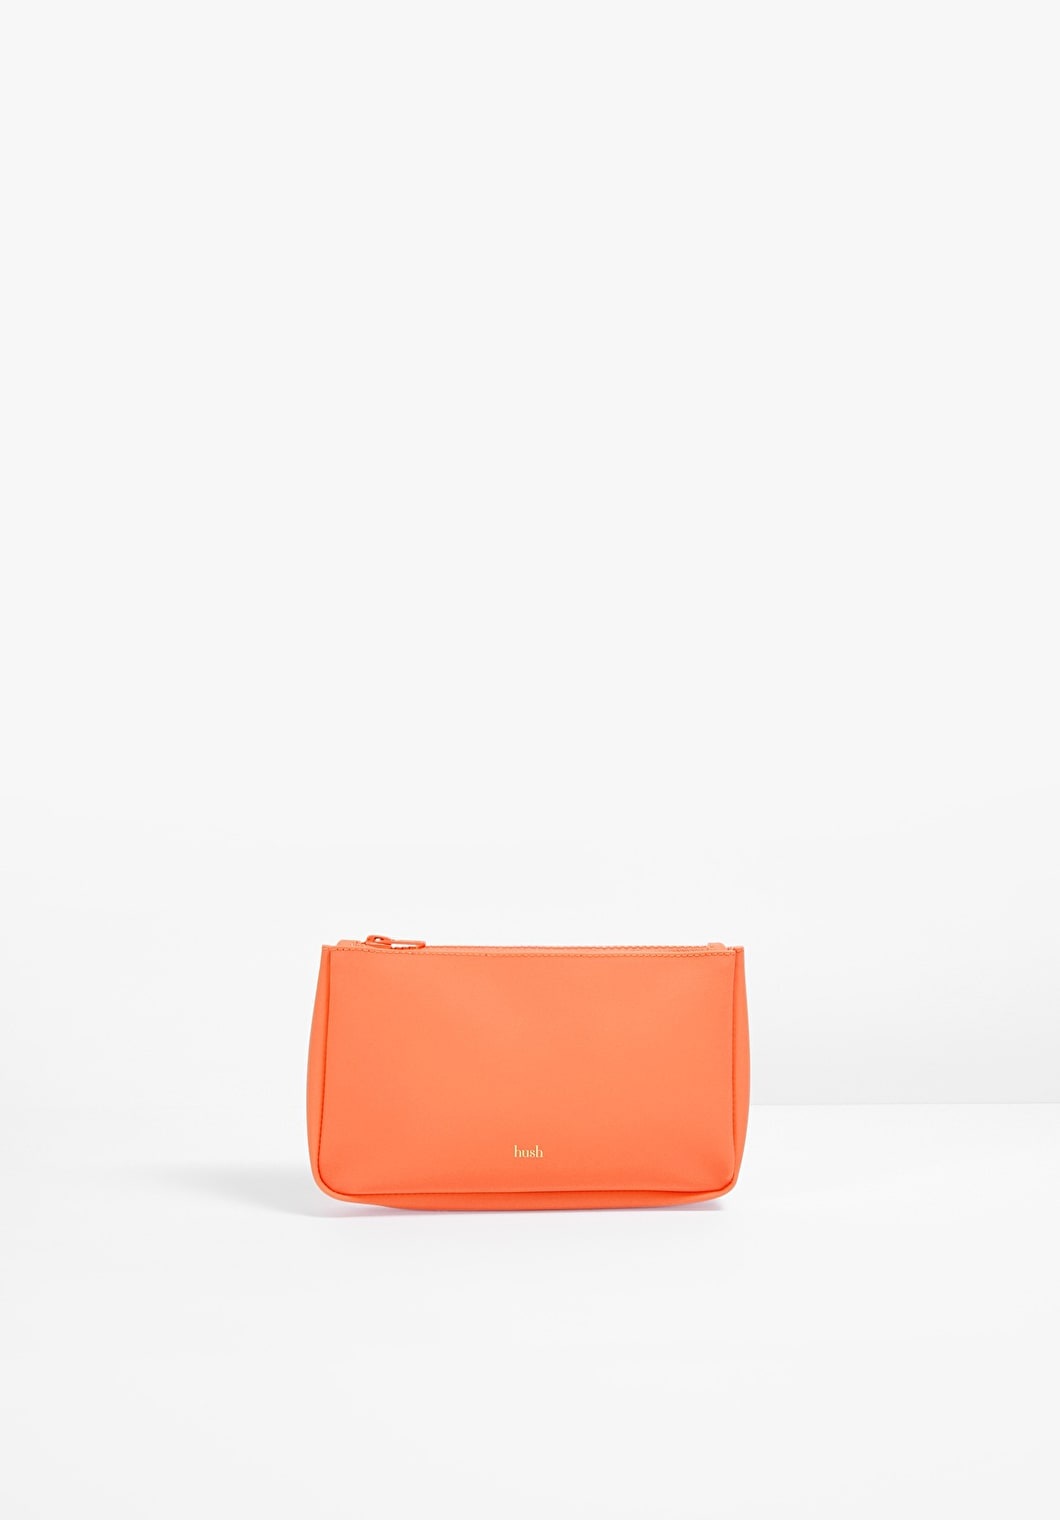 Jelly Pouch | hush